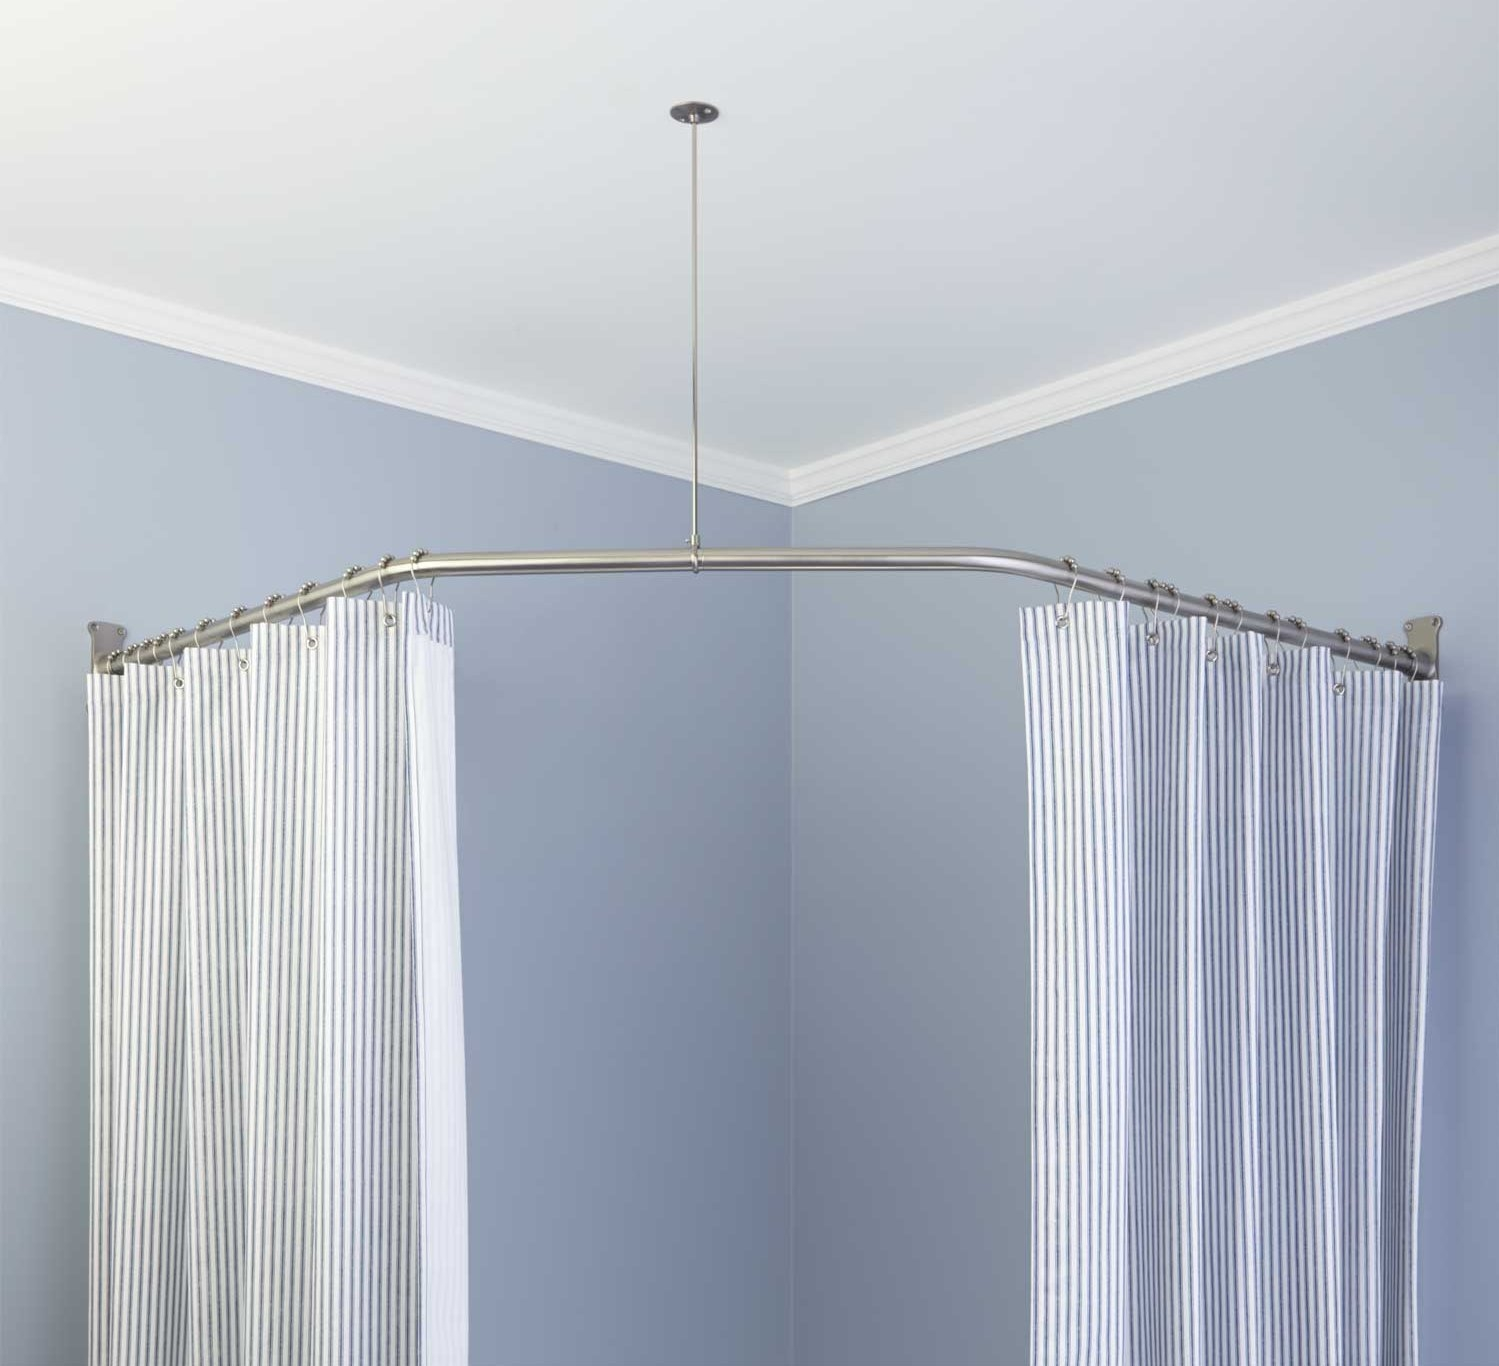 Interior Strong But Elegant Styles Of L Shaped Shower Curtain Rod With Regard To L Shaped Shower Curtain Rods (View 12 of 25)